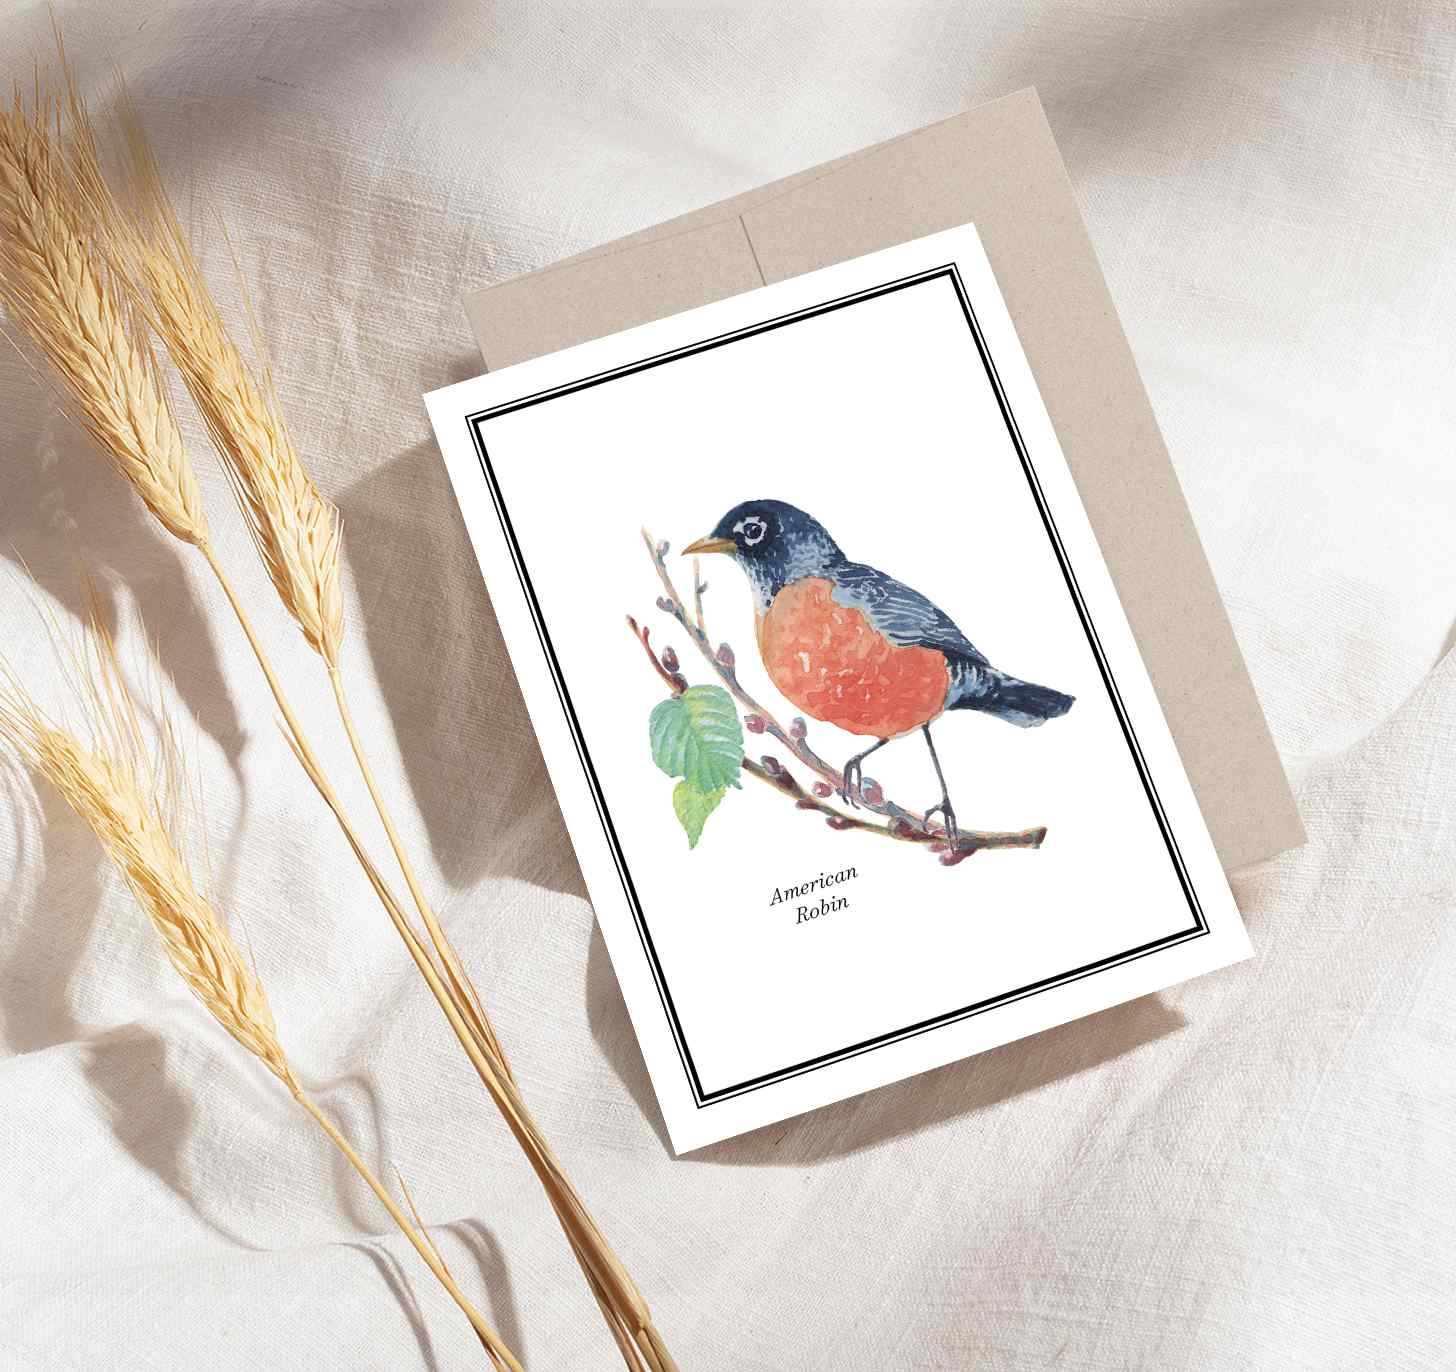 Red and black bird sitting on brown branch design with brown envelope